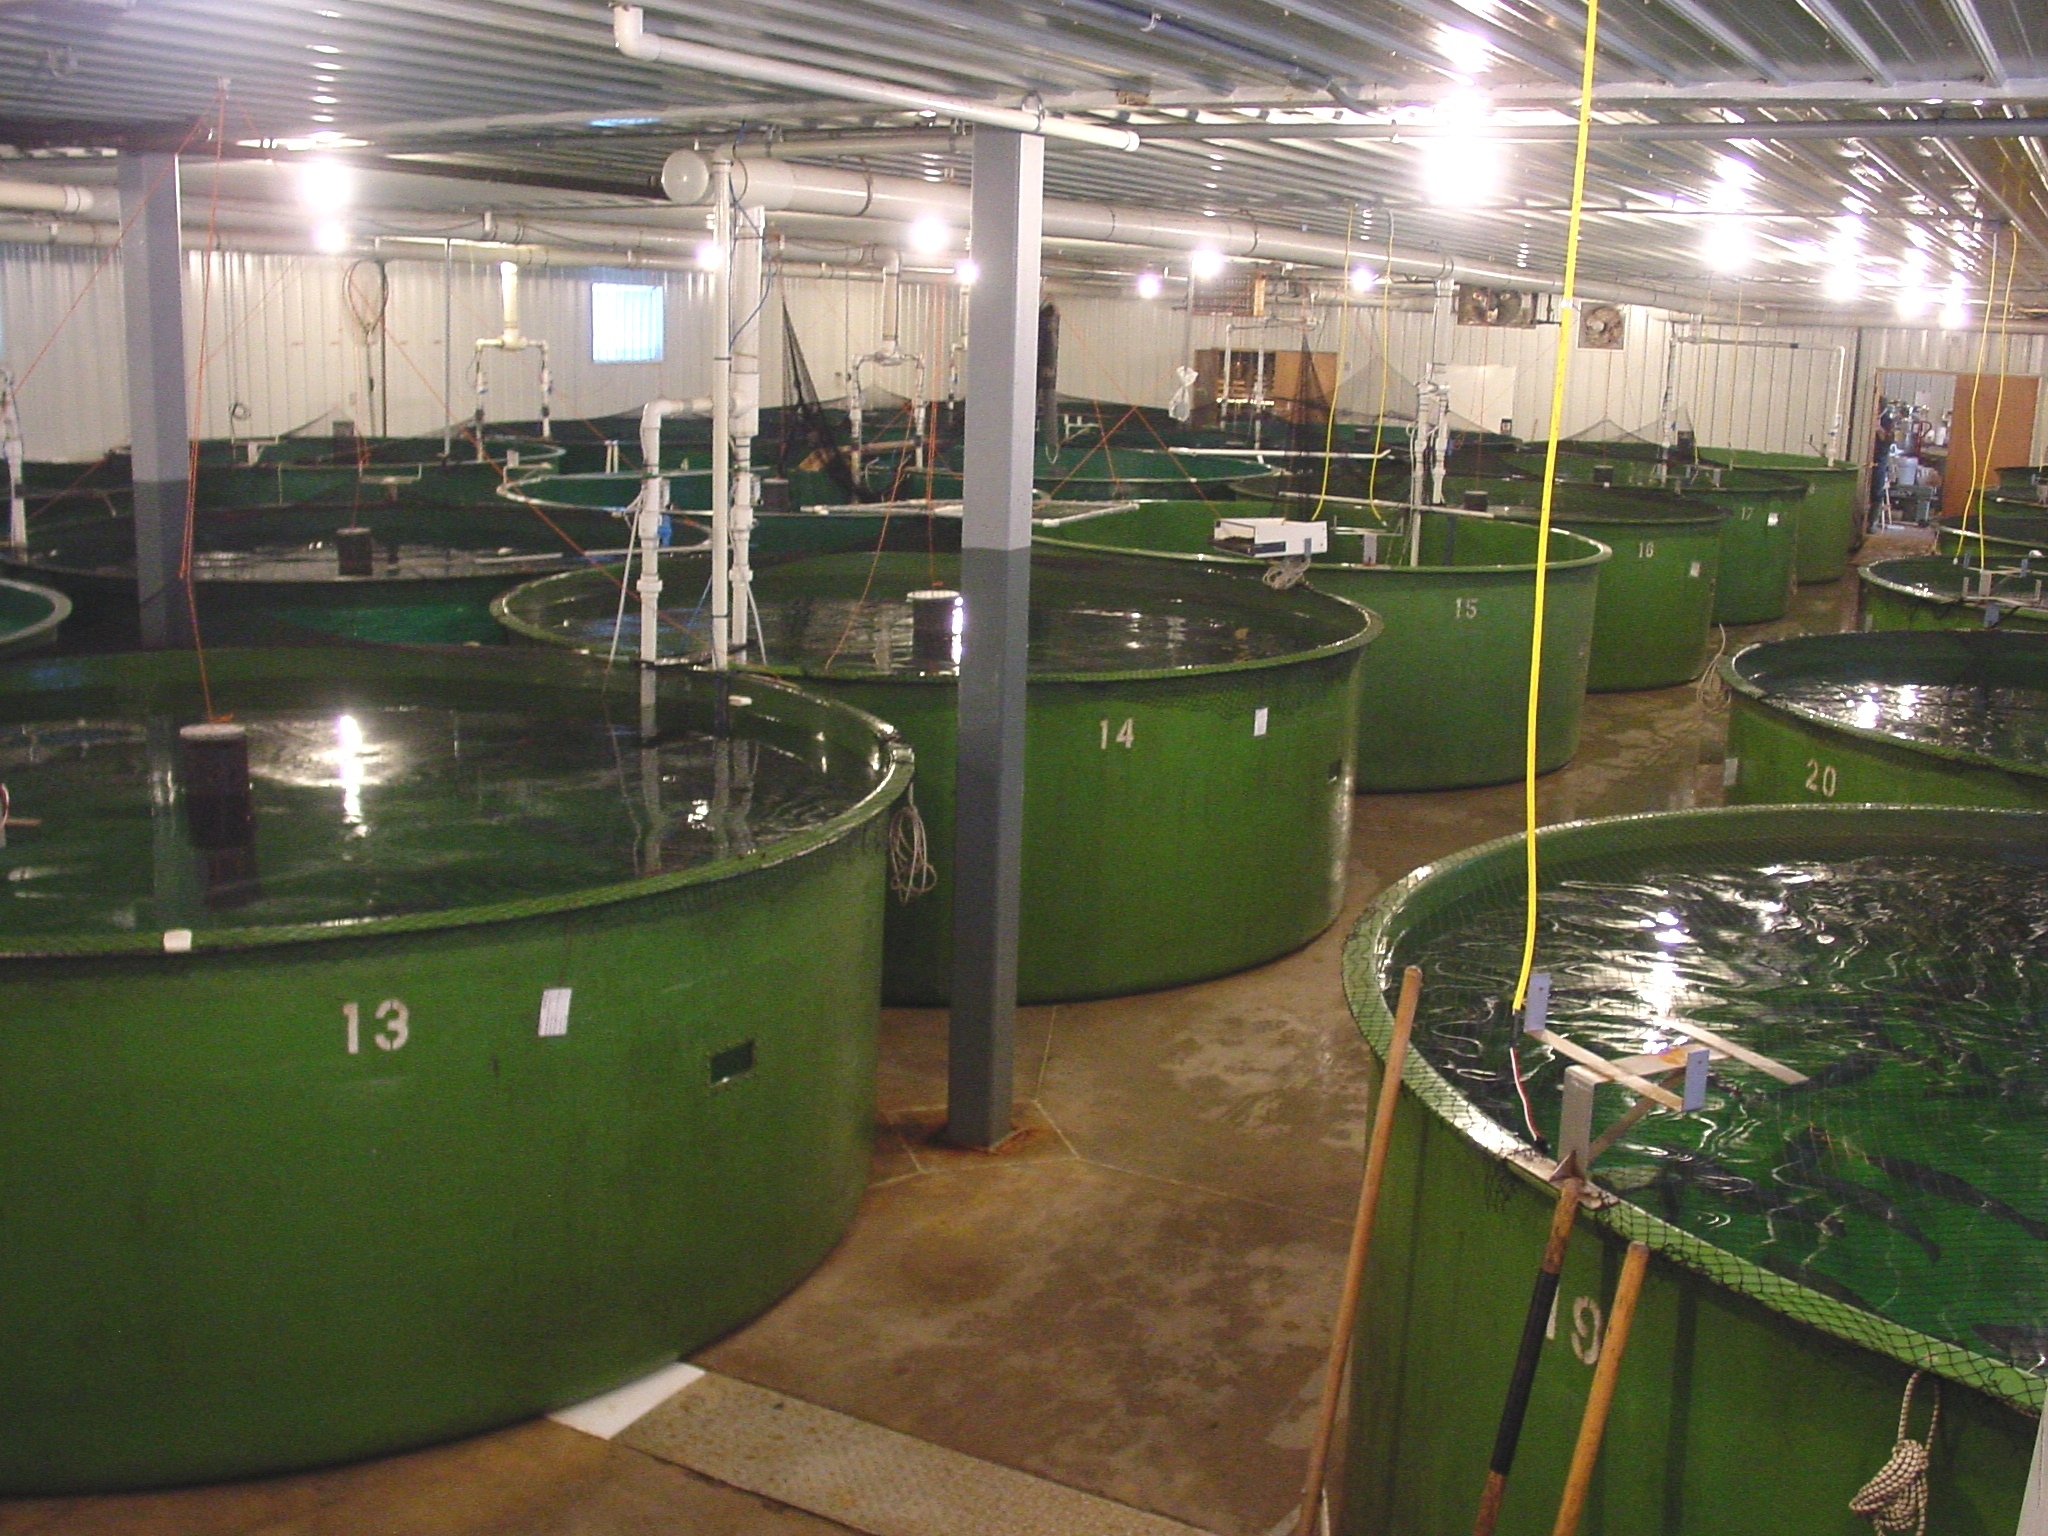 Tanks containing AquaBounty's genetically modified salmon in Waltham, Mass.